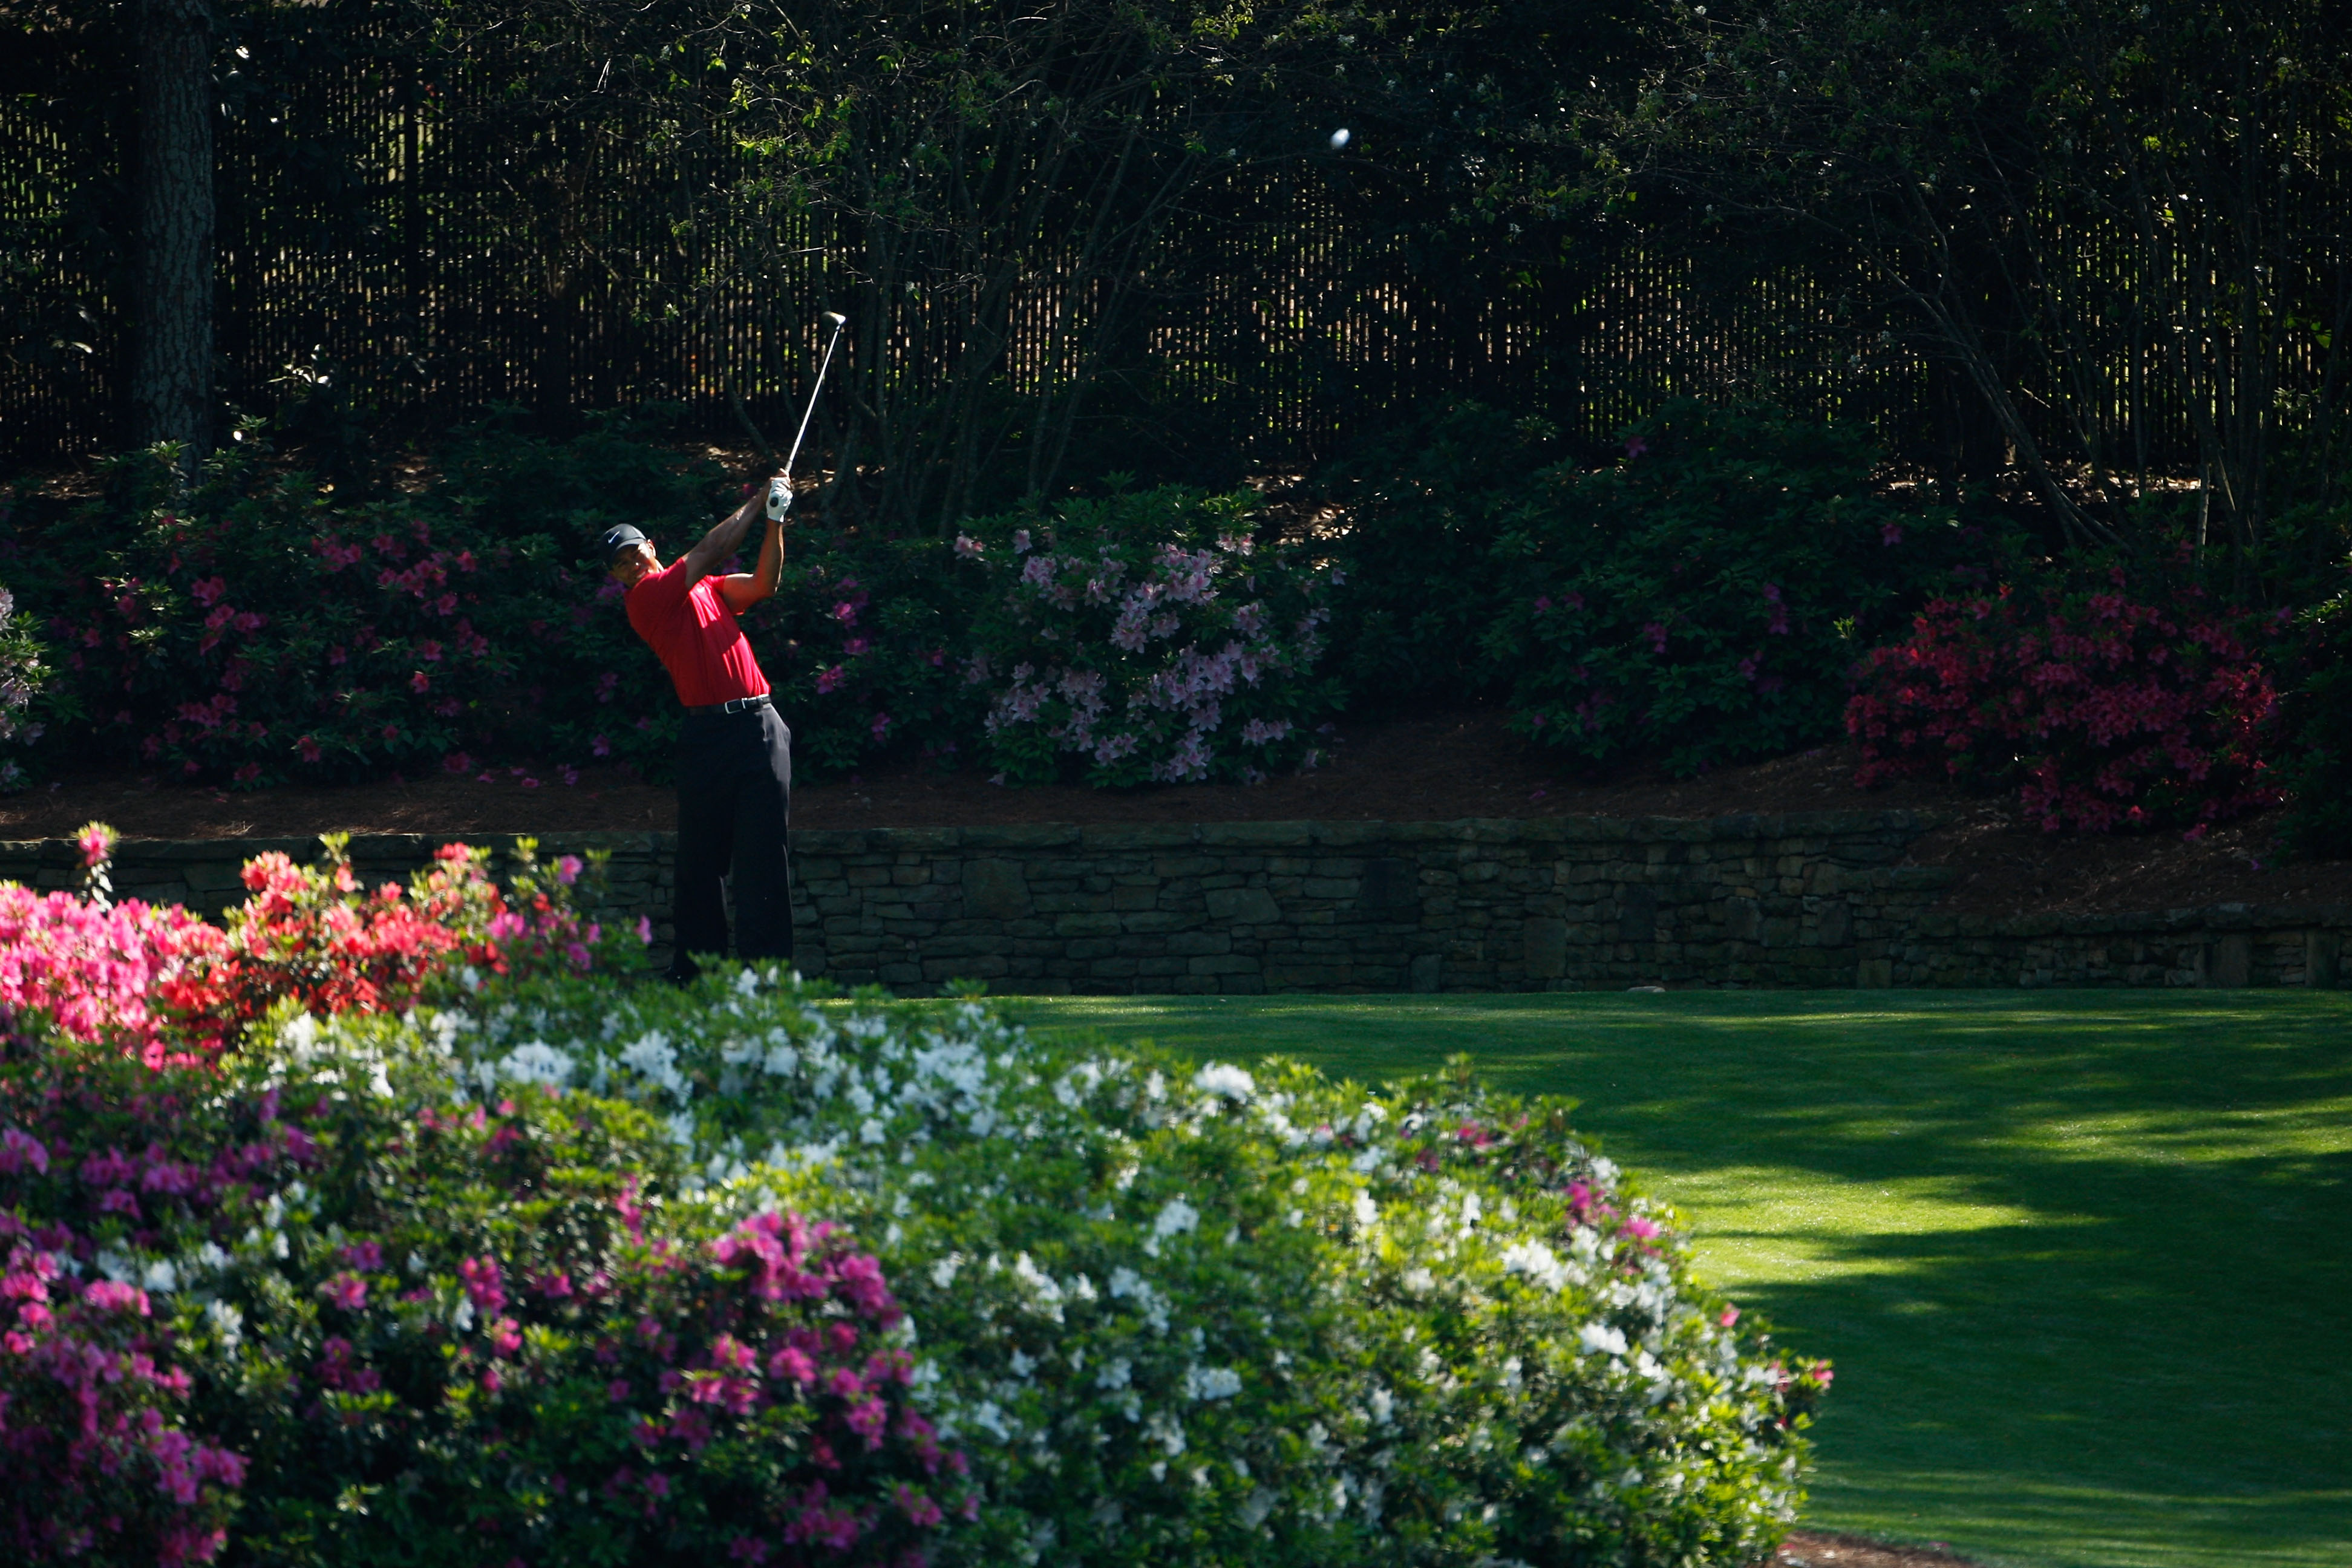 AUGUSTA, GA - APRIL 12:  Tiger Woods plays his tee shot on the 13th hole during the final round of the 2009 Masters Tournament at Augusta National Golf Club on April 12, 2009 in Augusta, Georgia.  (Photo by Jamie Squire/Getty Images)